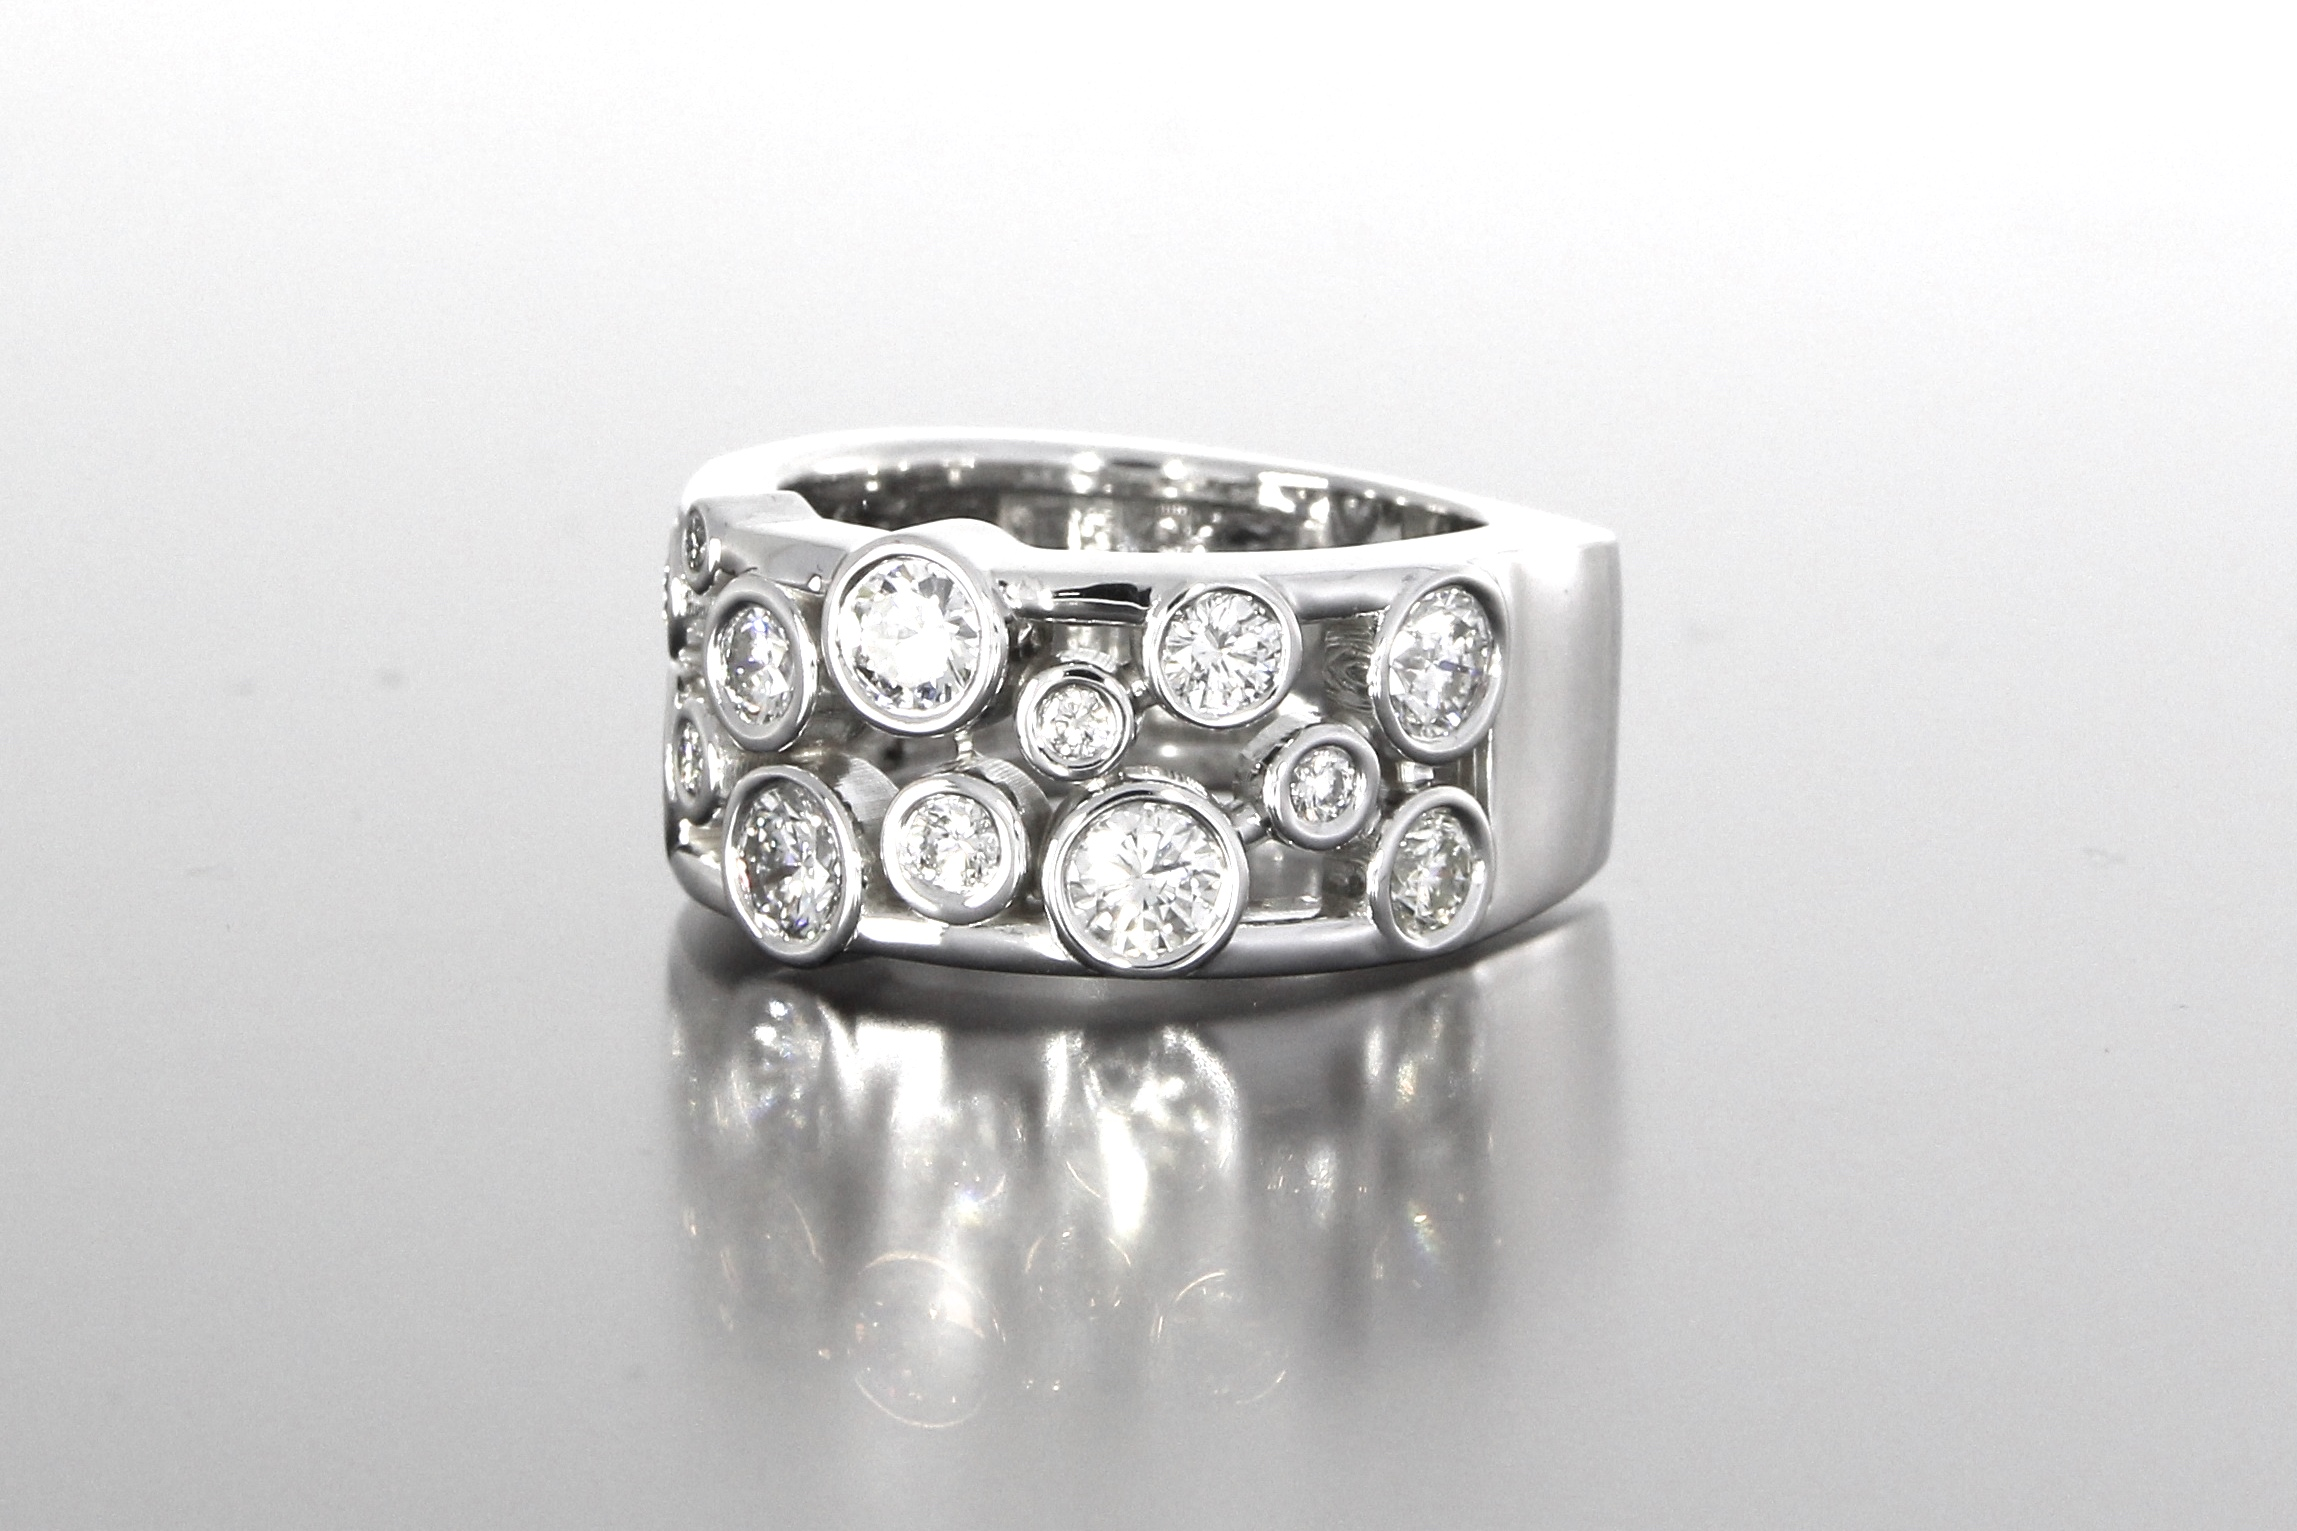 side-view-unique-eternity-style-diamond-band-womens-wedding-white-gold-craft-revival-jewelry-store-grand-rapids